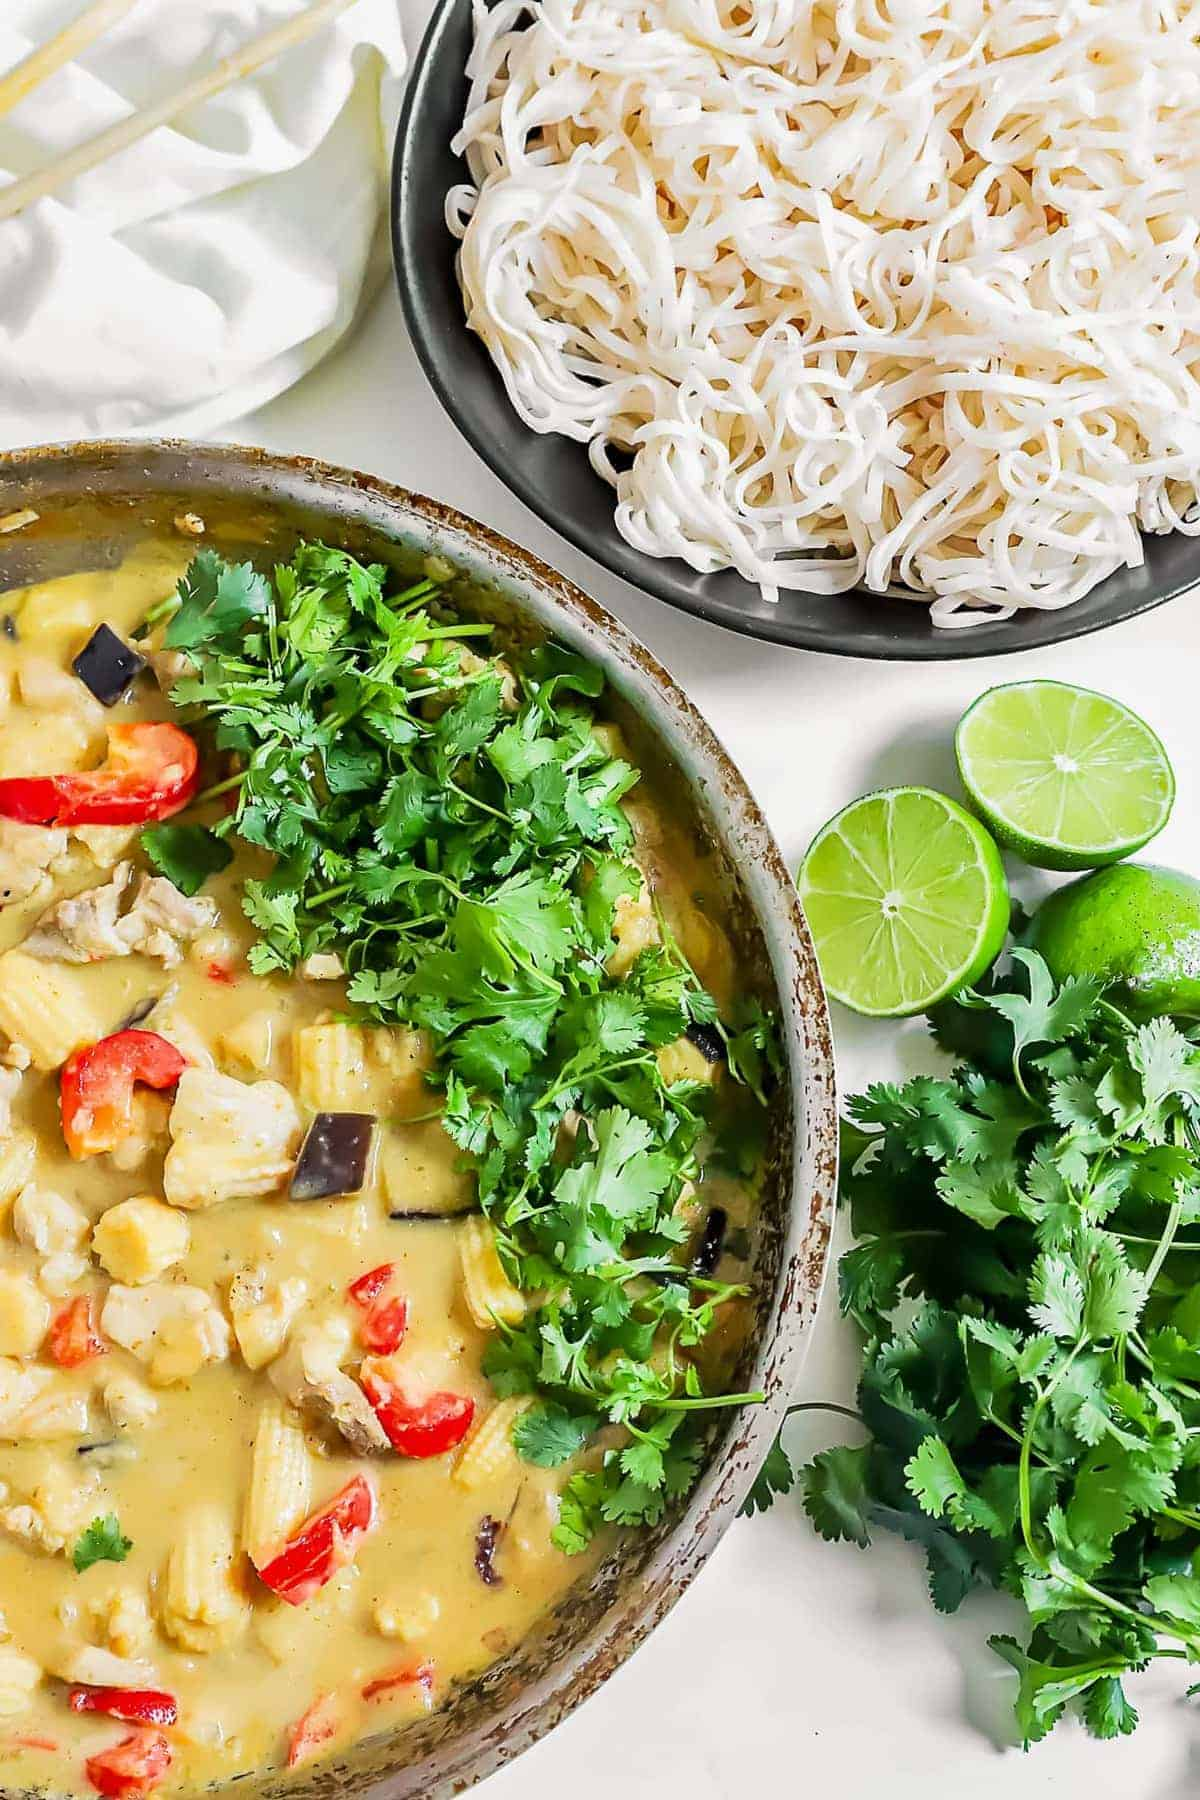 Thai green curry next to a bowl of noodles